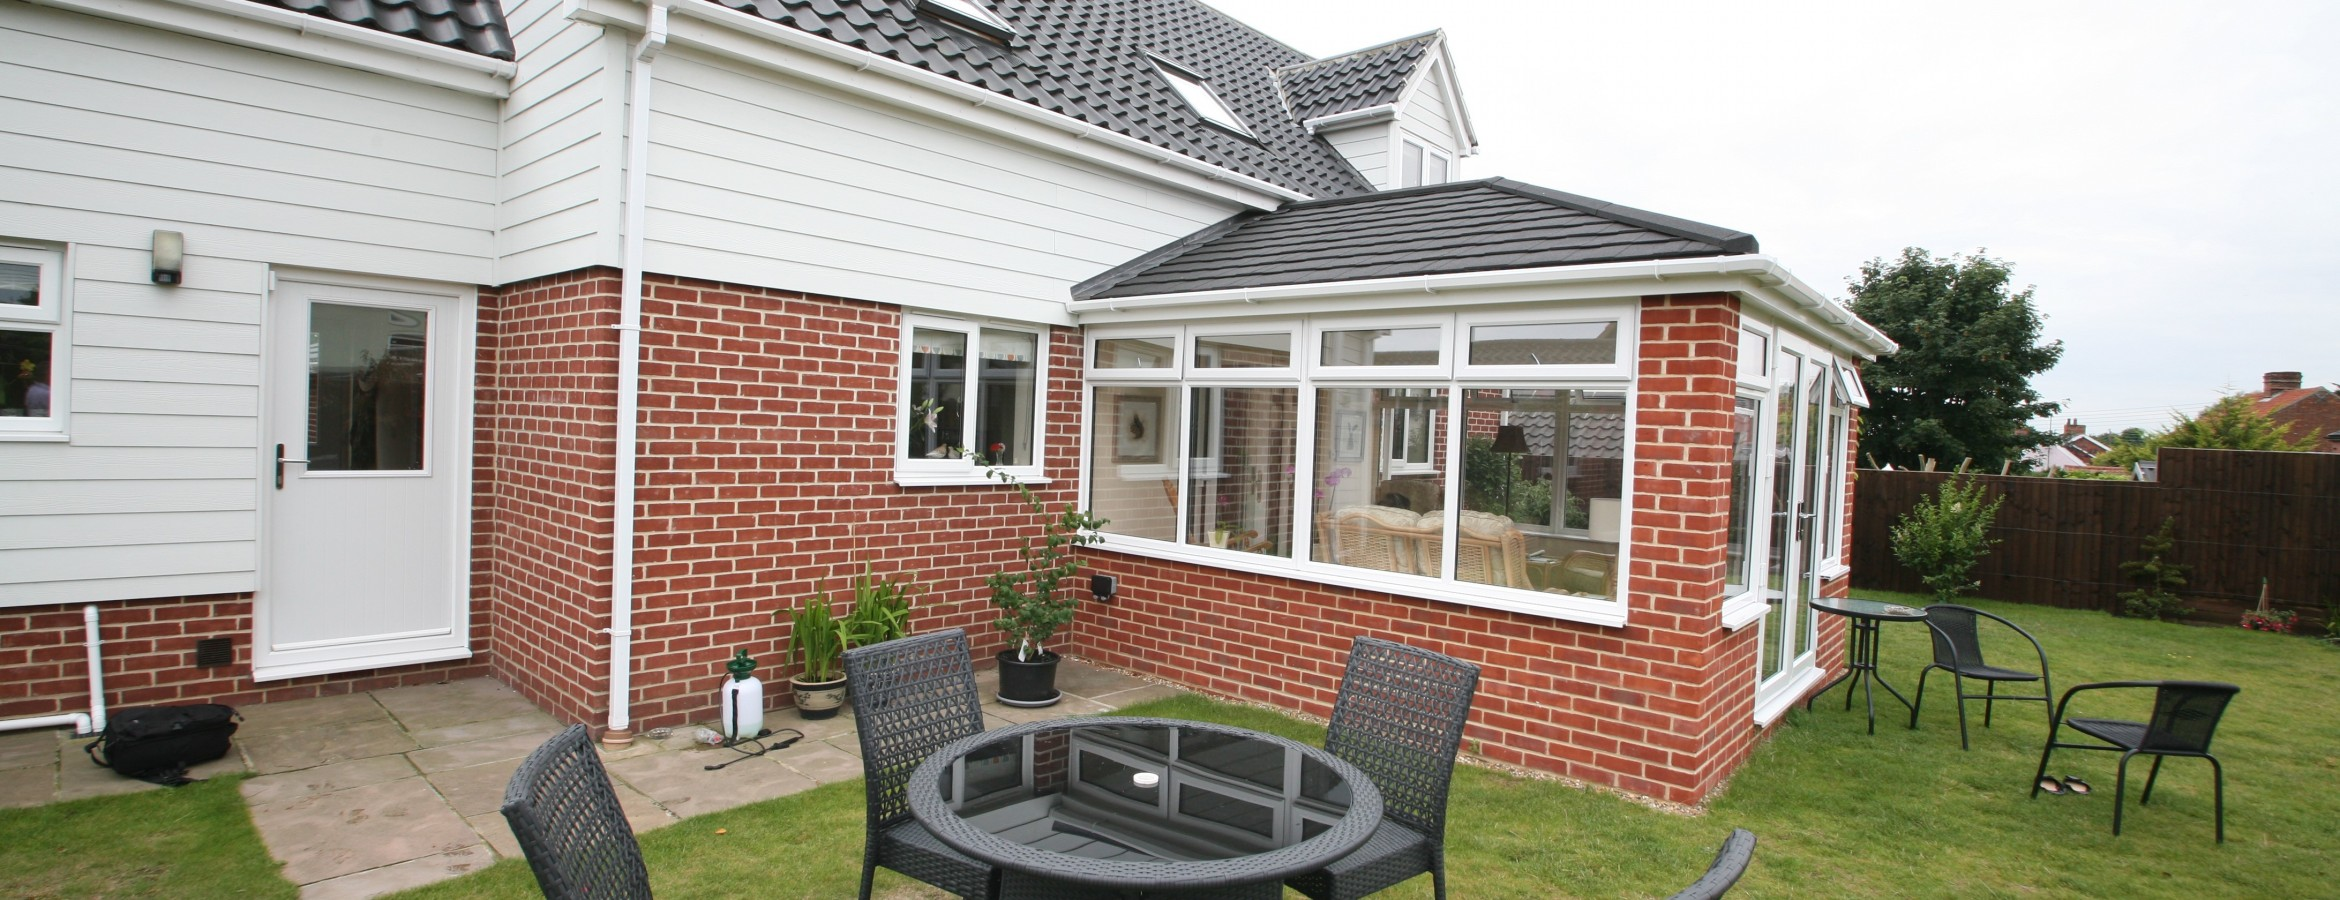 Conservatory with an insulated roof